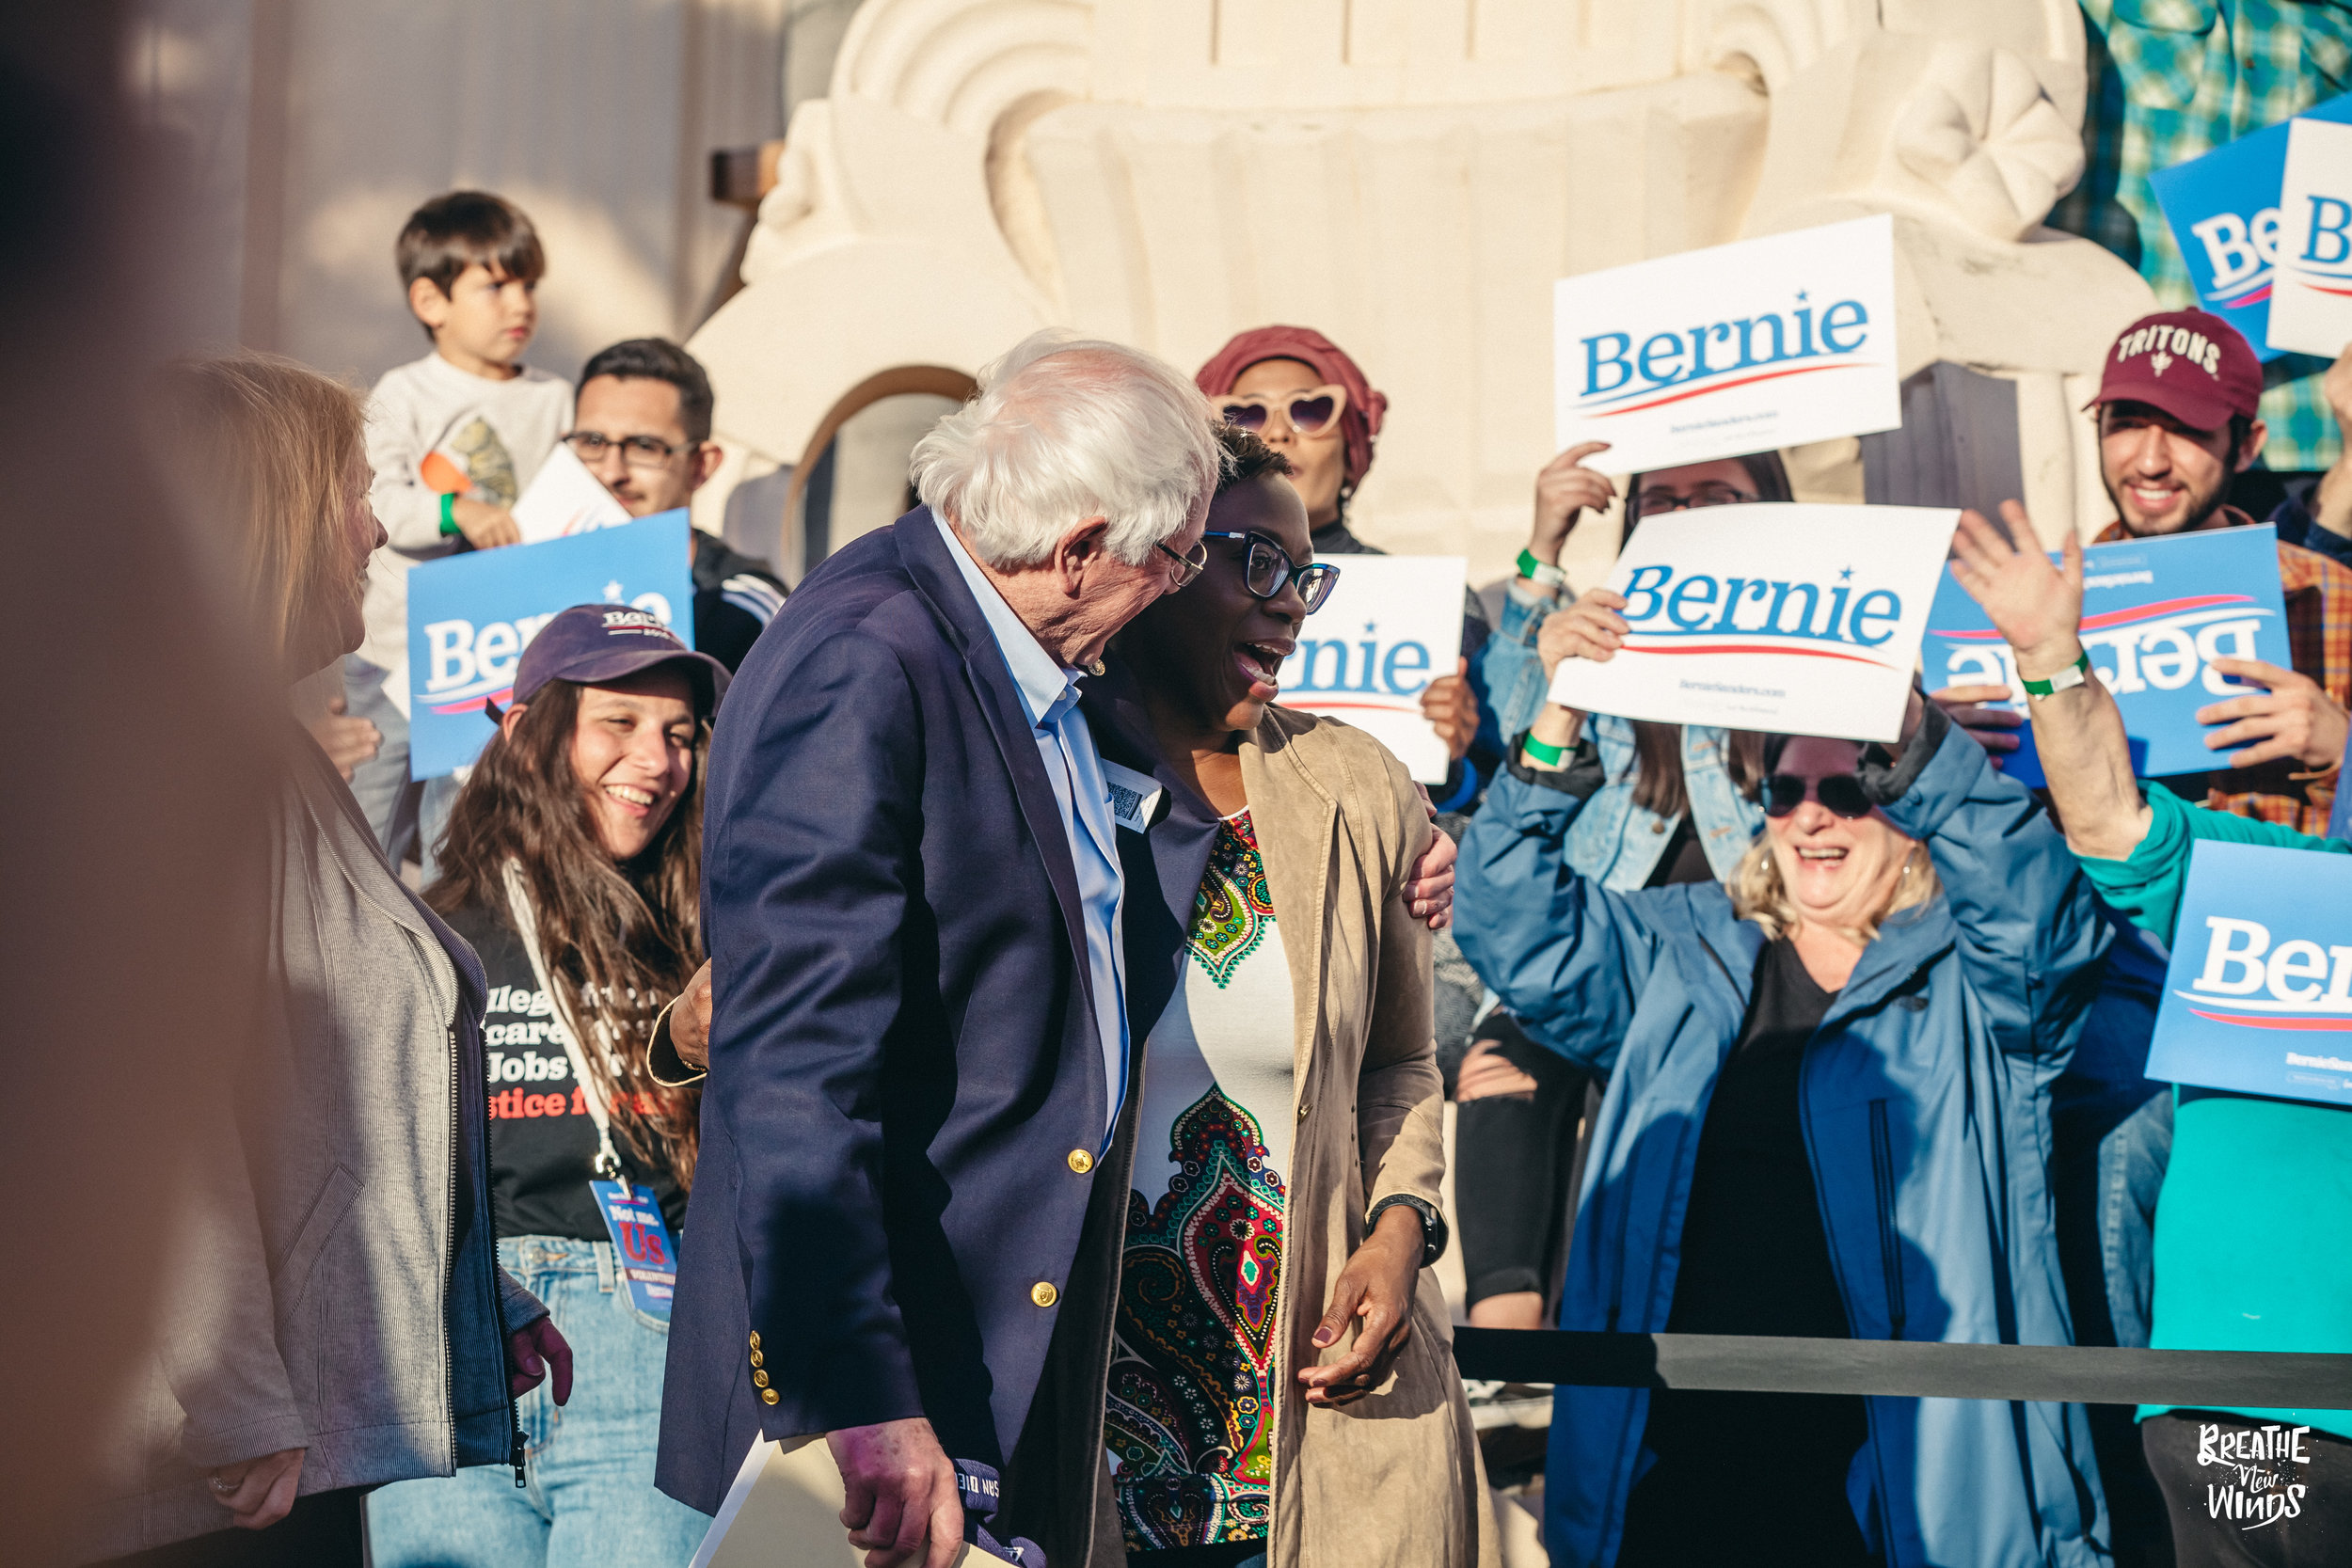 BernieInSD_22March2019-BernieAndFriends (25 of 78).jpg